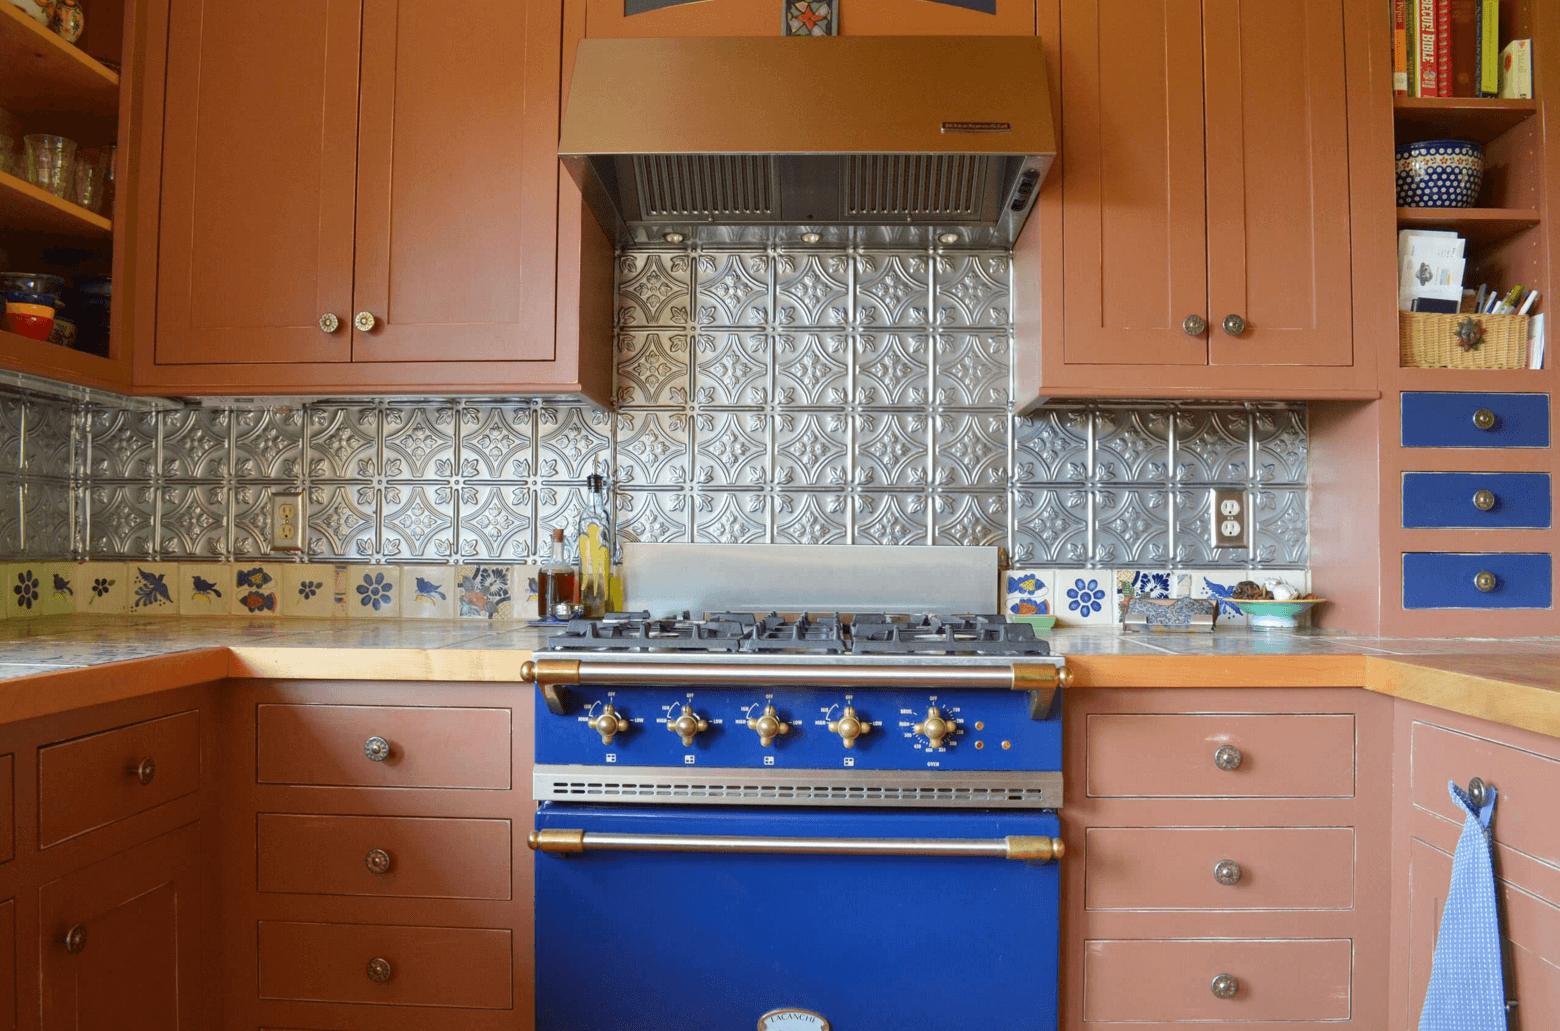 5 Stunning Ways To Redo Your Kitchen Backsplash